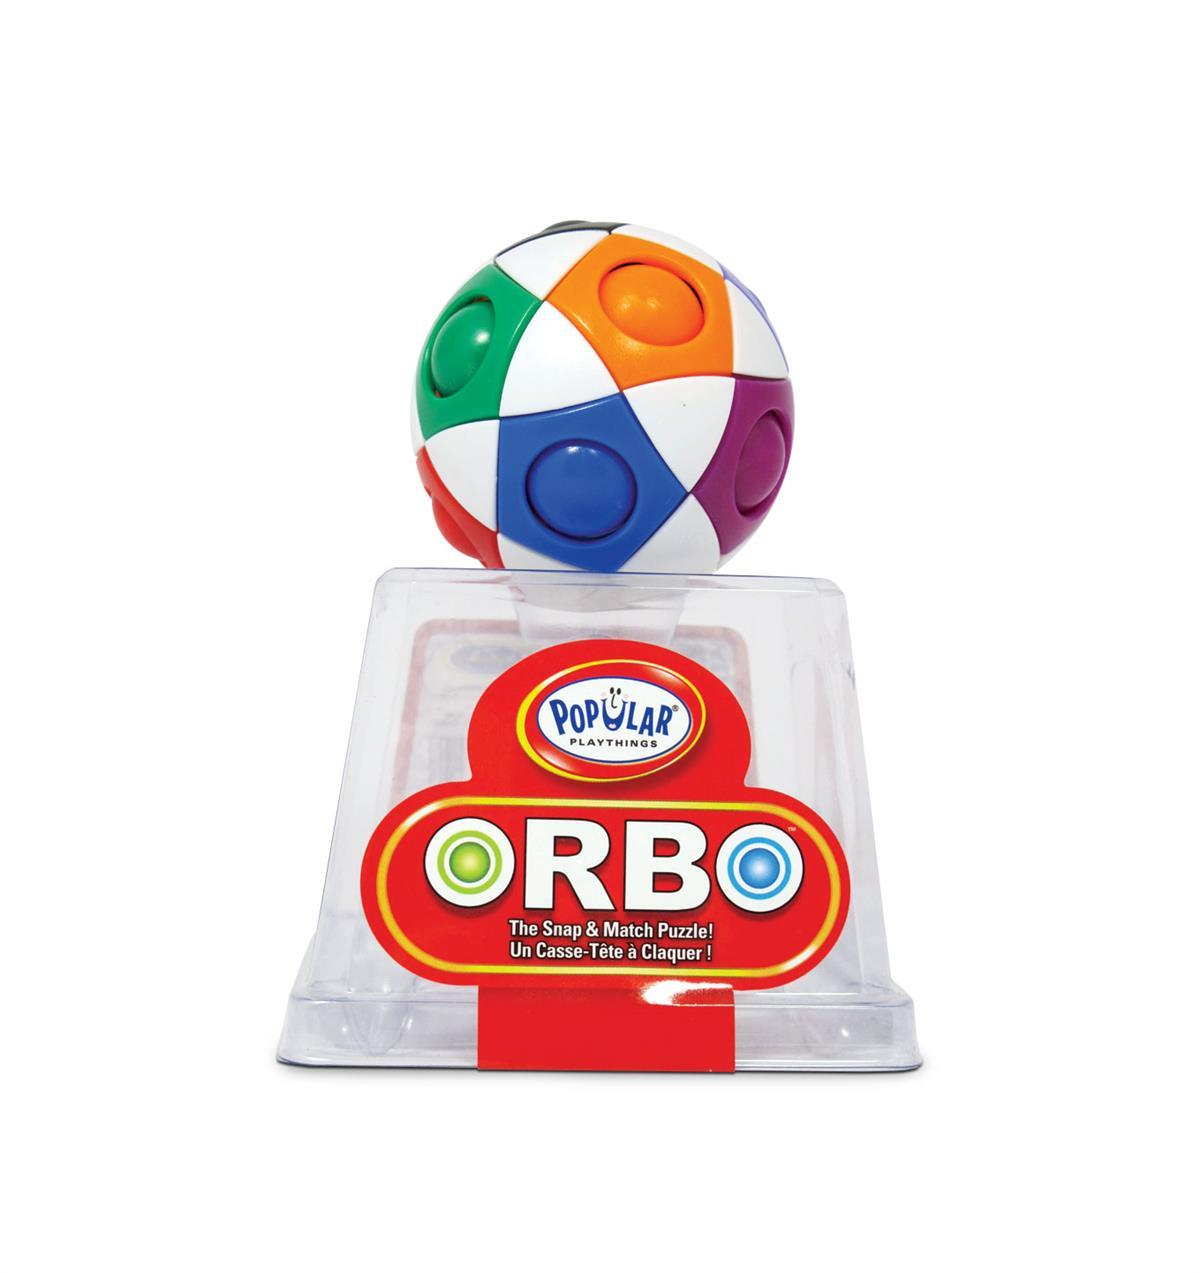 ORBO - The snap-and-match puzzle